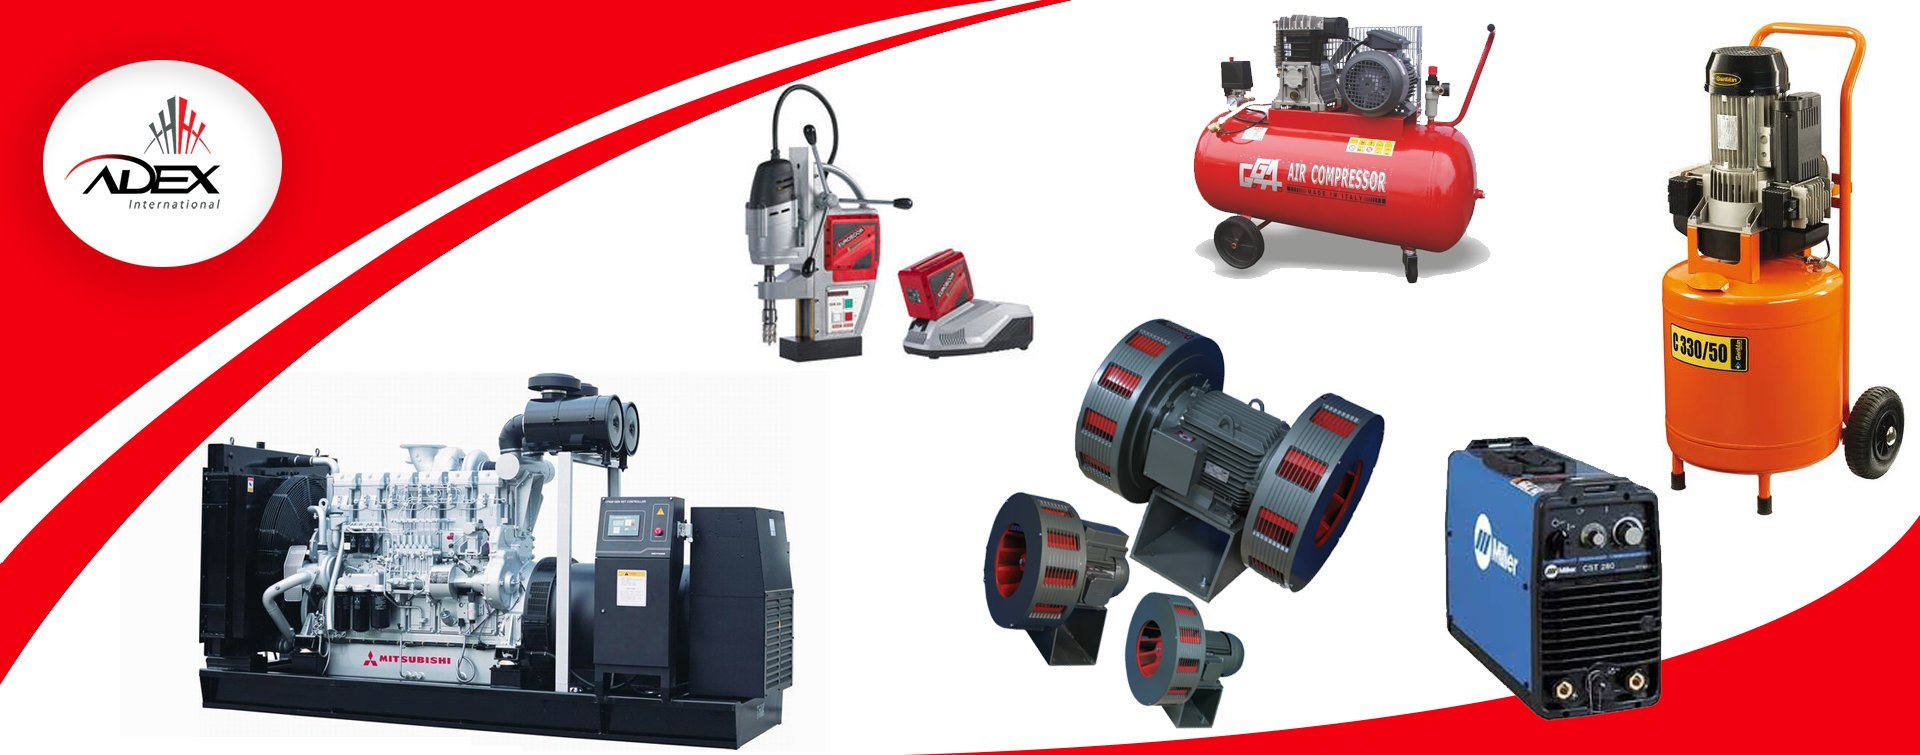 Generators from Adex International